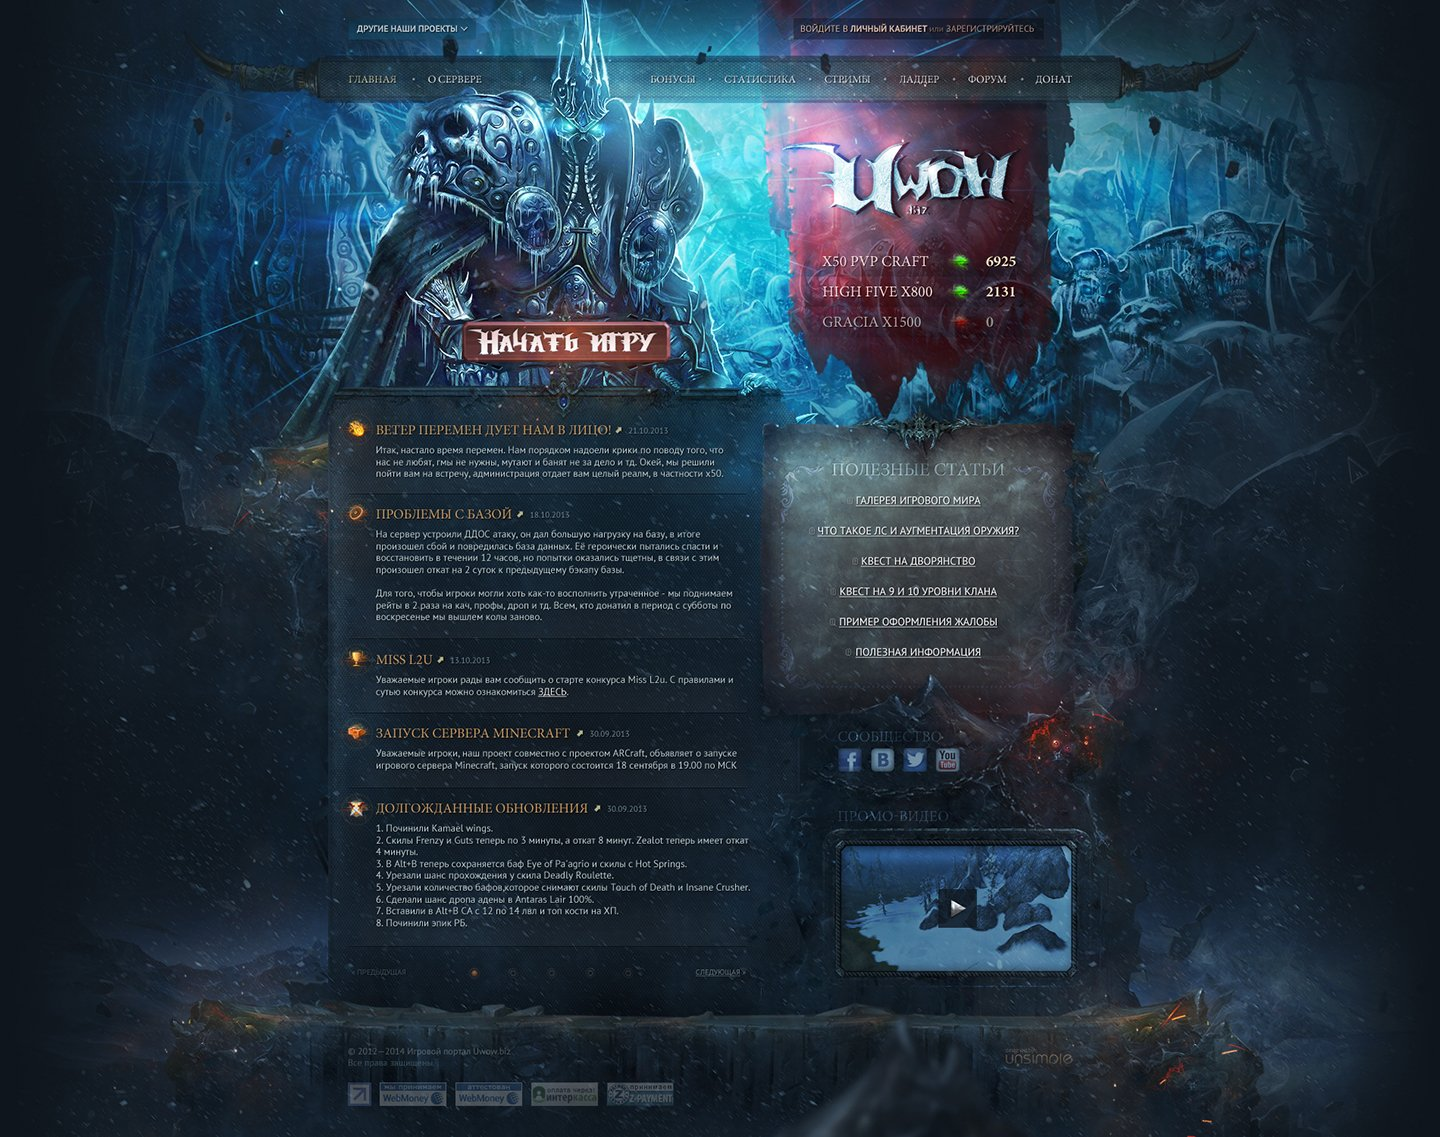 UWoW > Website design for private server World of Warcraft. WotLK